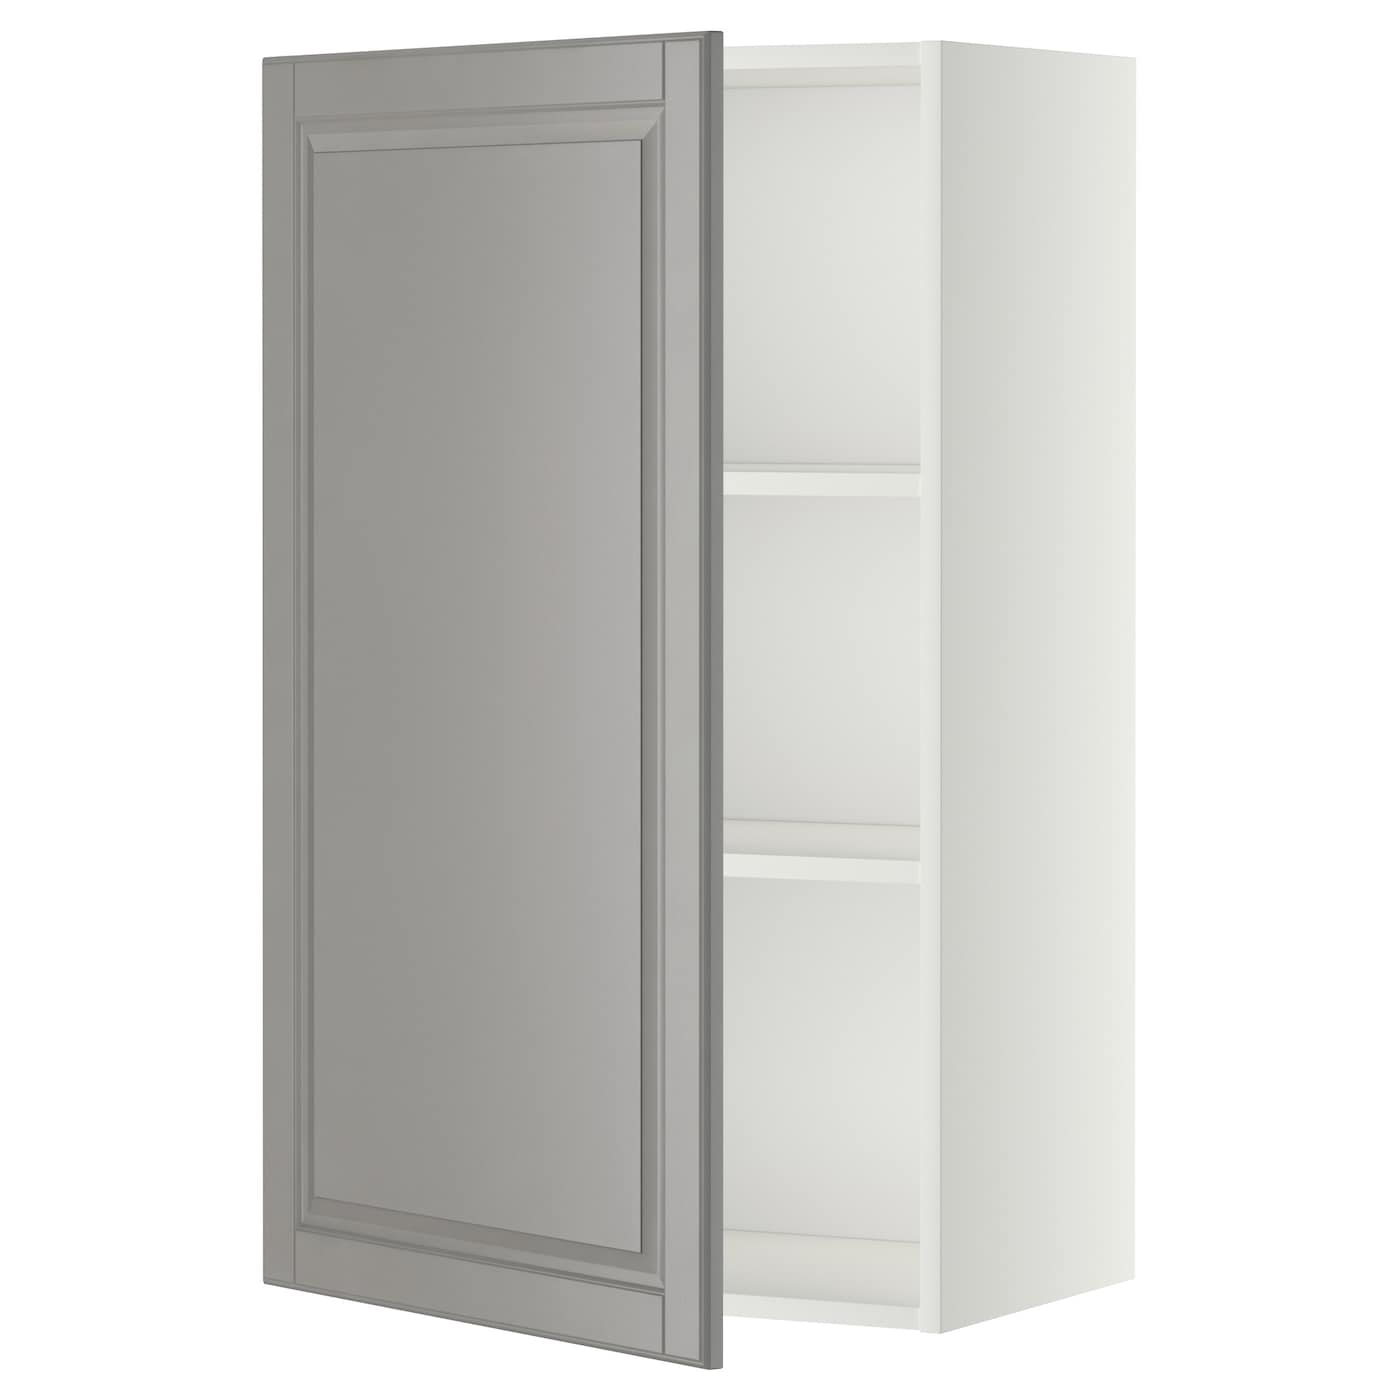 Metod Wall Cabinet With Shelves: METOD Wall Cabinet With Shelves White/bodbyn Grey 60 X 100